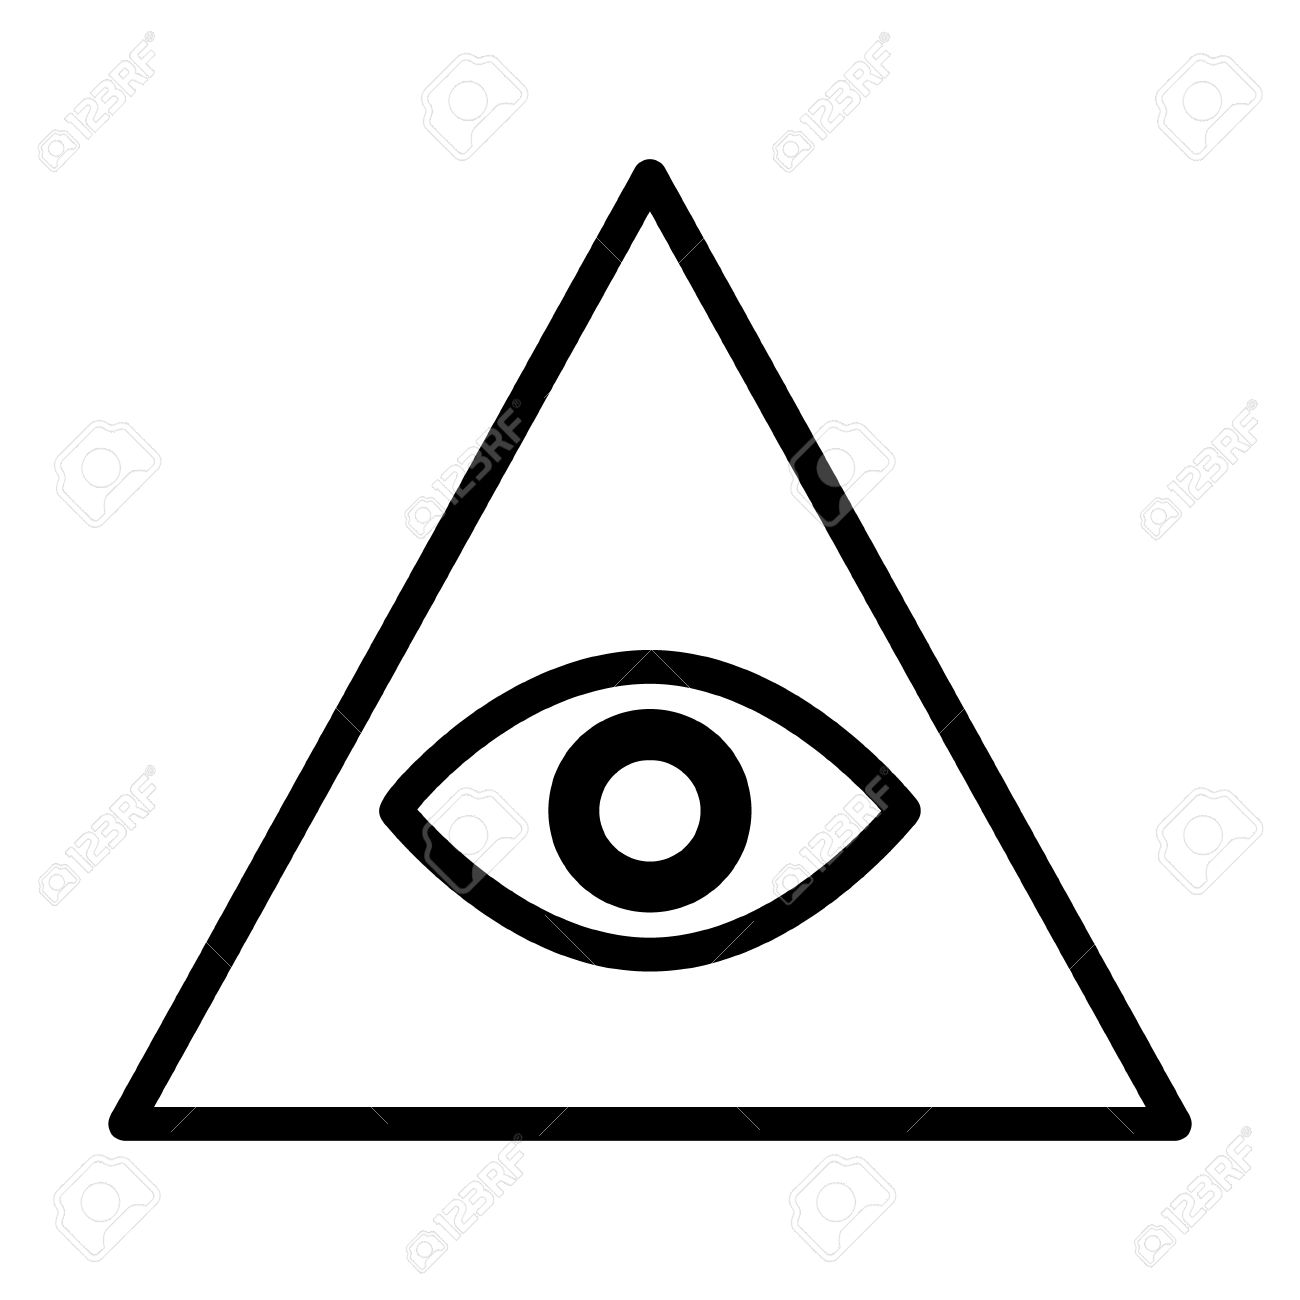 Eye Of God Clipart.